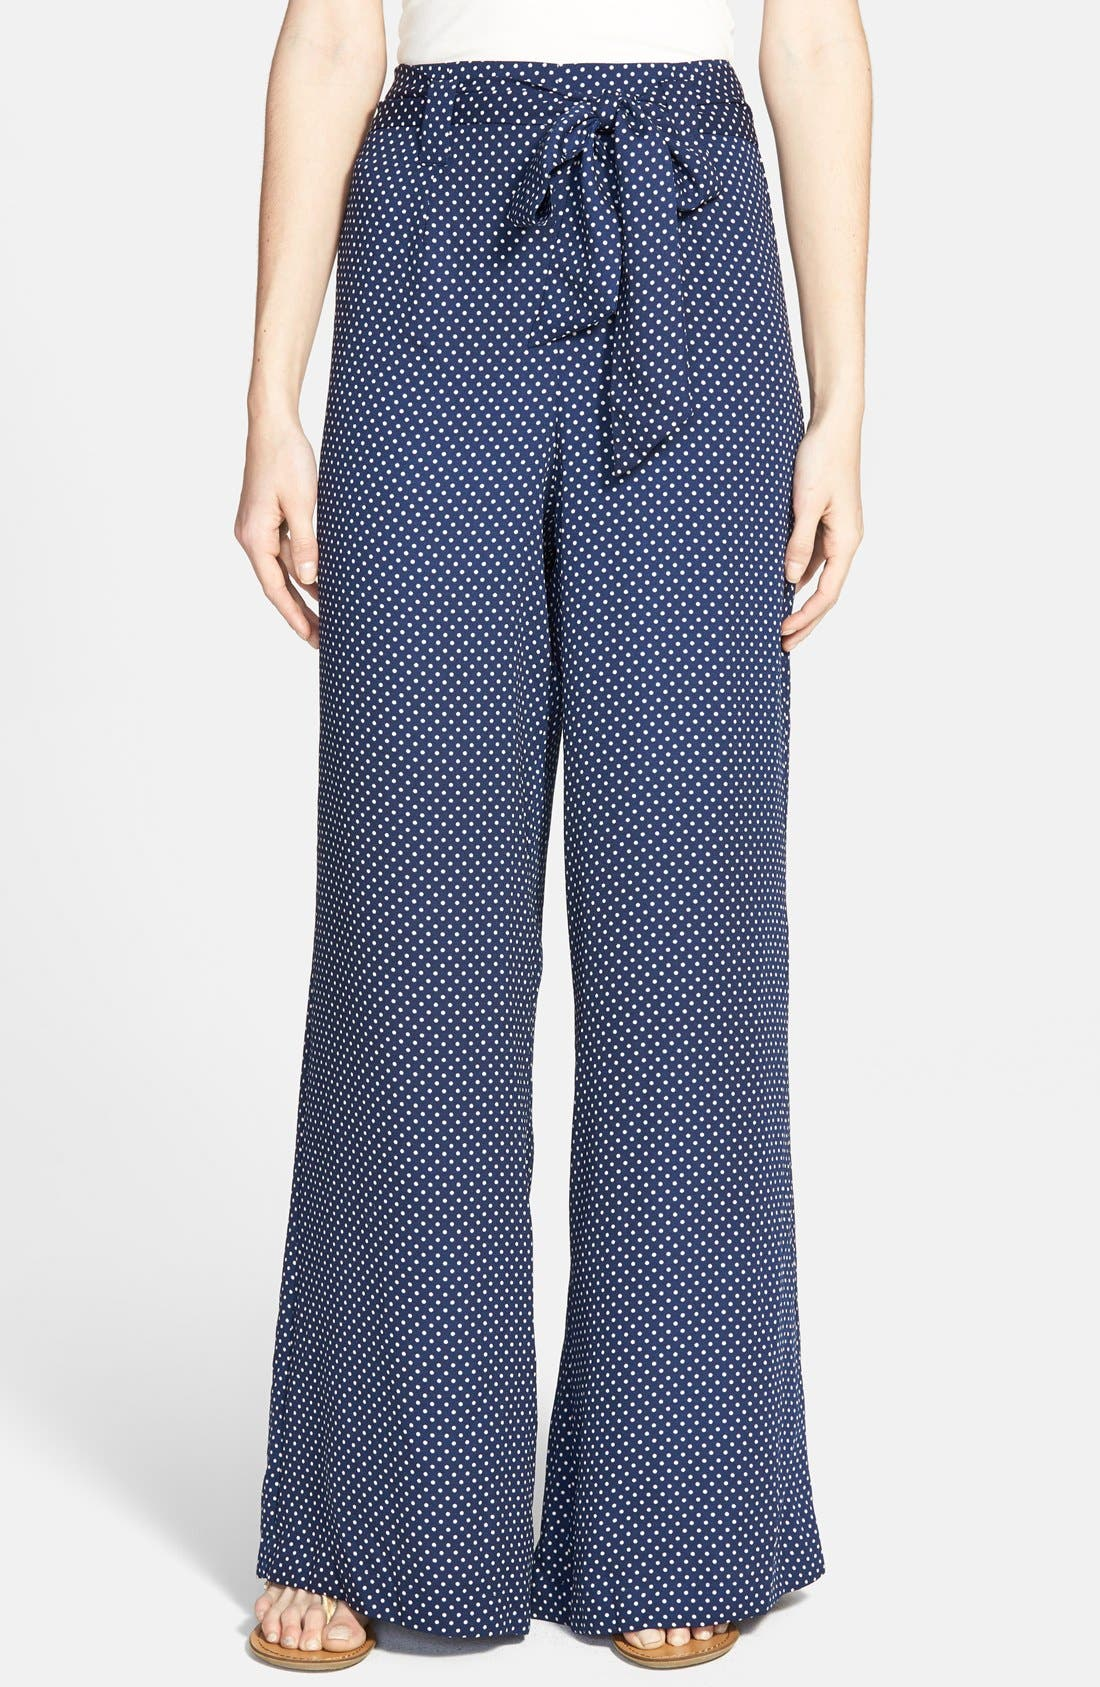 Alternate Image 1 Selected - Socialite Print Tie Front Palazzo Pants (Juniors)